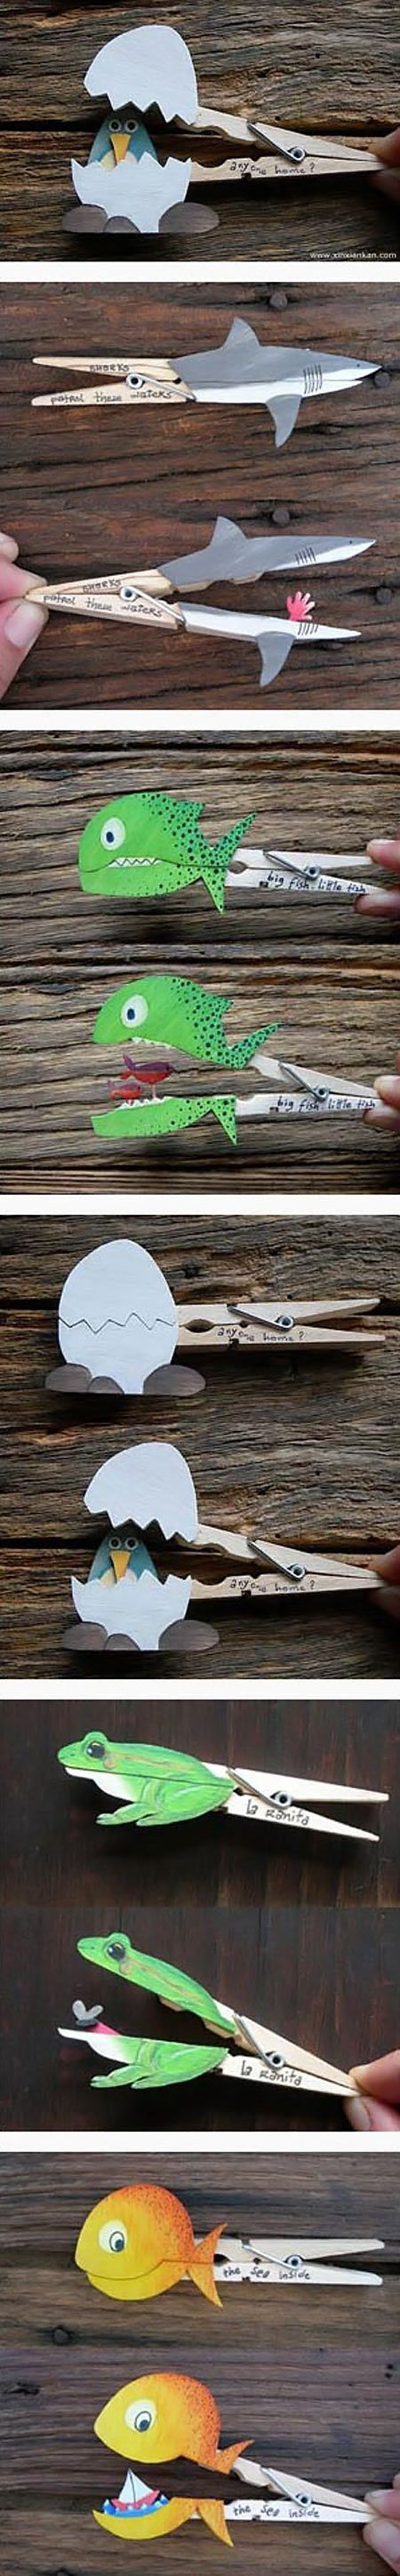 Cool! I could see teaching a Sunday School class/craft with the whale on the last one...Instead of the boat, make it Jonah!! :)